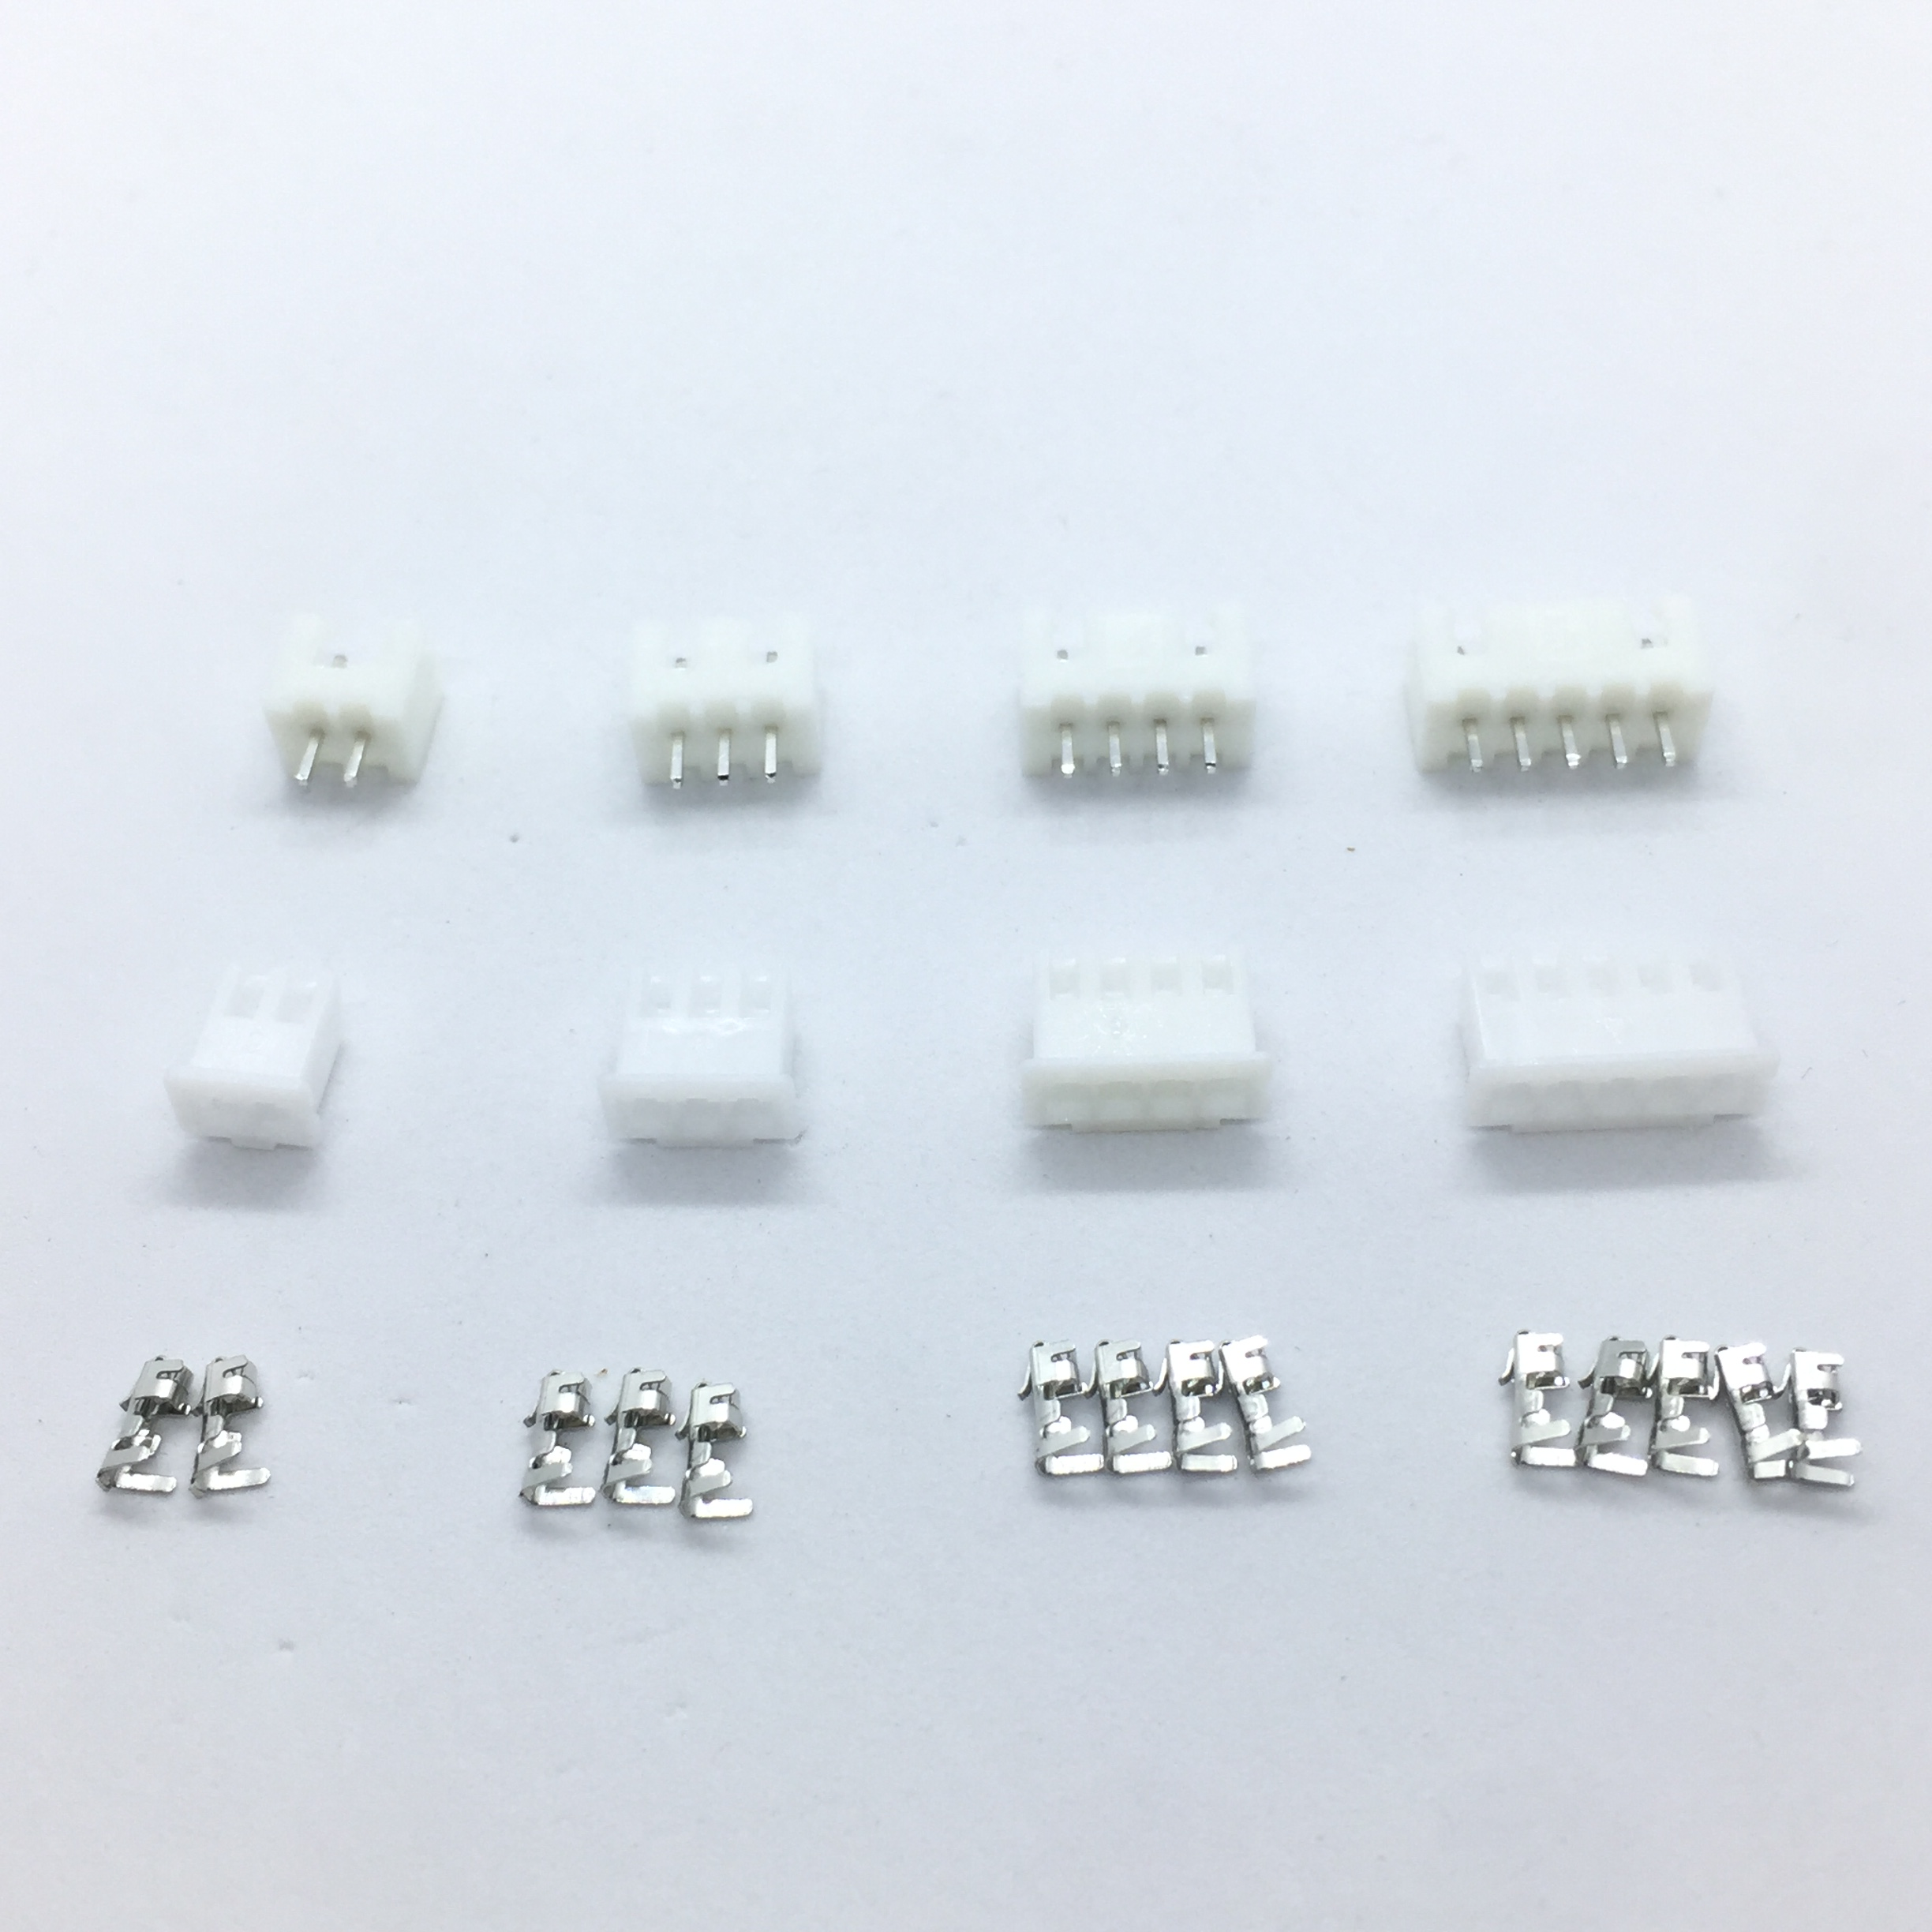 230pcs XH2.54 2p 3p 4p 5 pin 2.54mm Pitch Terminal Kit / Housing / Pin Header Connector Wire Connectors Adaptor XH Kits JST TJC3 60 sets kit 2p 3p 4pin right angle 2 54mm pitch terminal housing pin header connector wire connectors adaptor xh kits in box